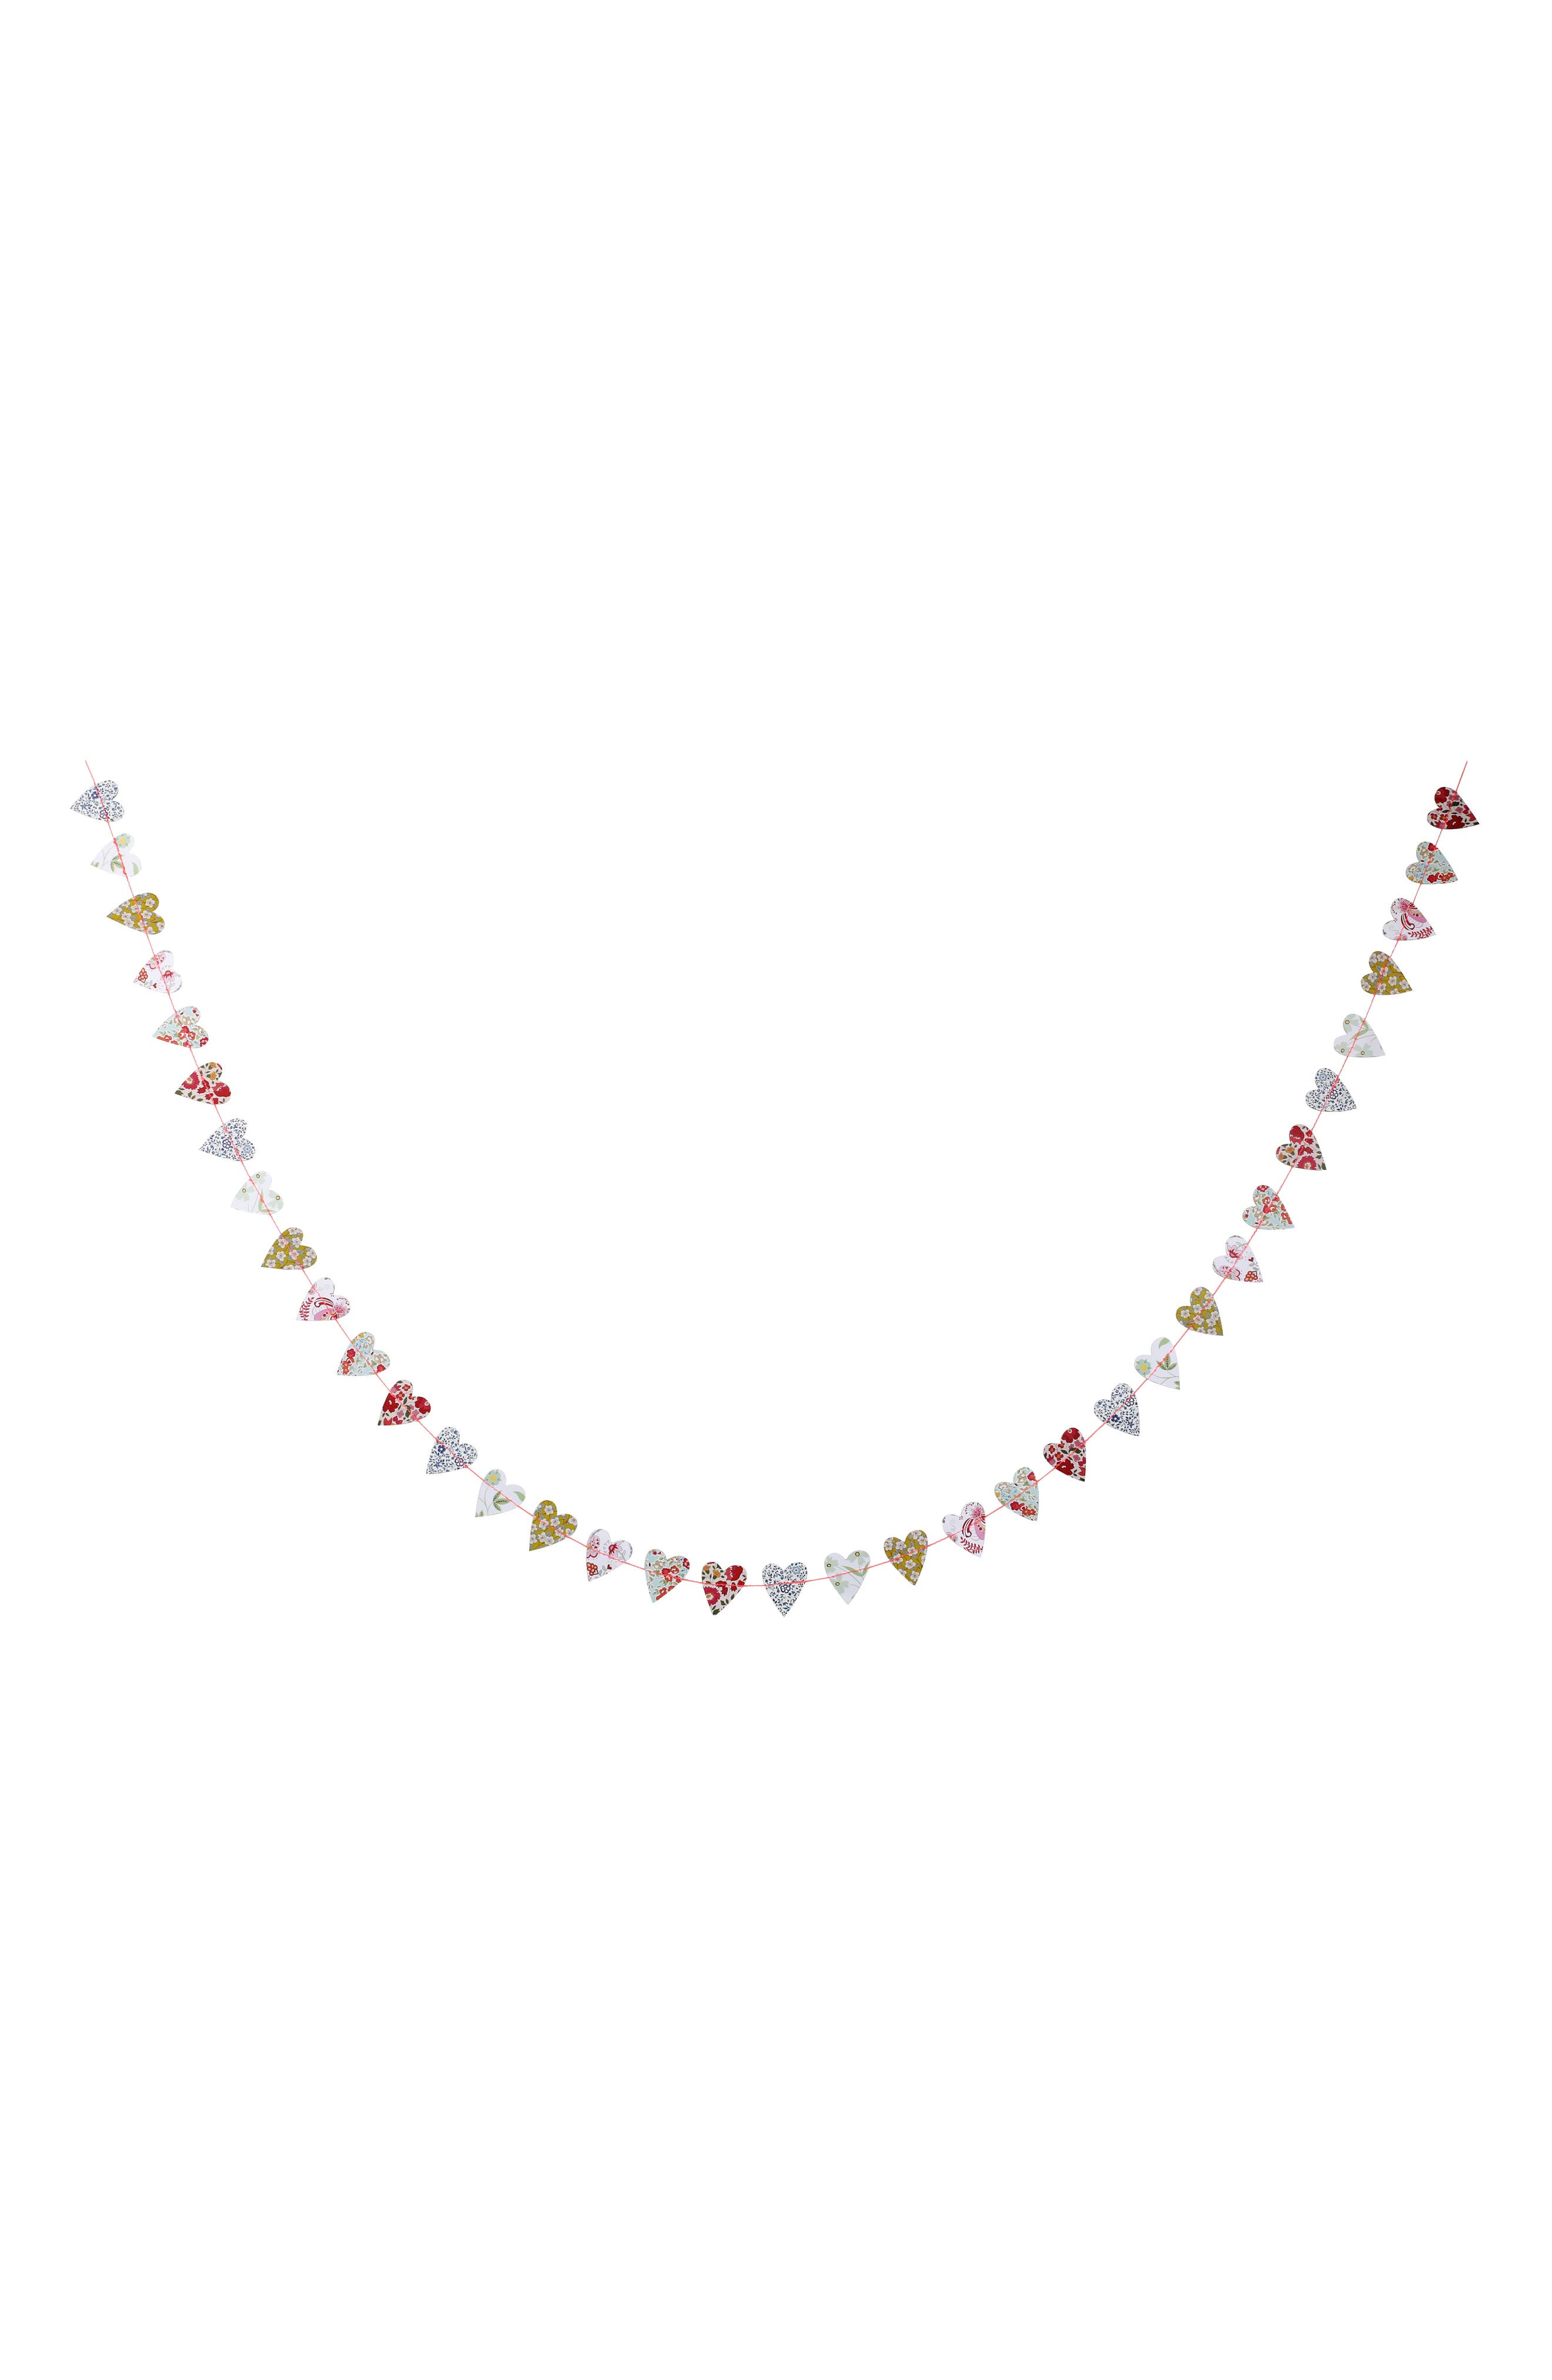 Meri Meri x Liberty Heart Mini Garland